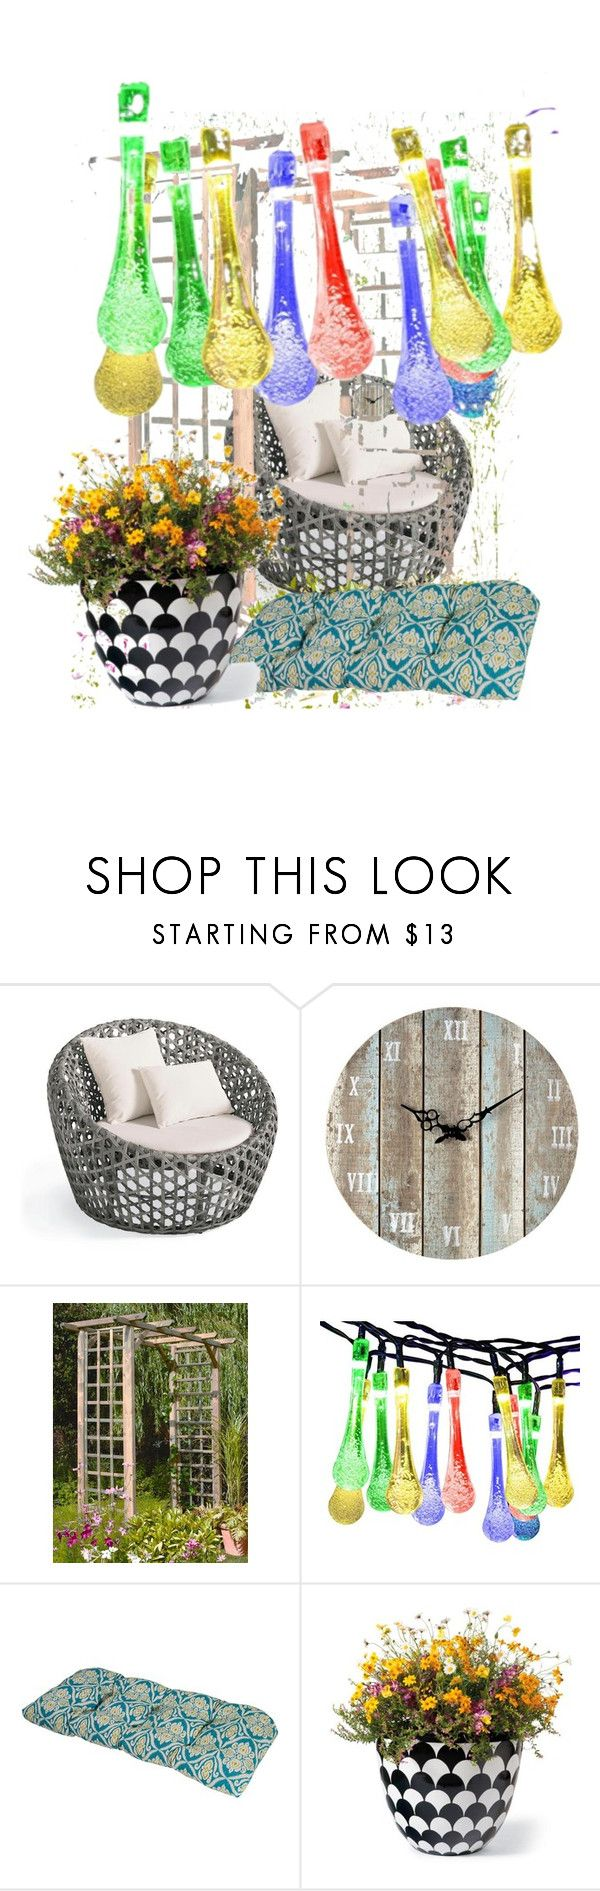 Untitled #159 by vendys on Polyvore featuring interior, interiors, interior design, home, home decor, interior decorating, Grandin Road, Terrasol and Sterling